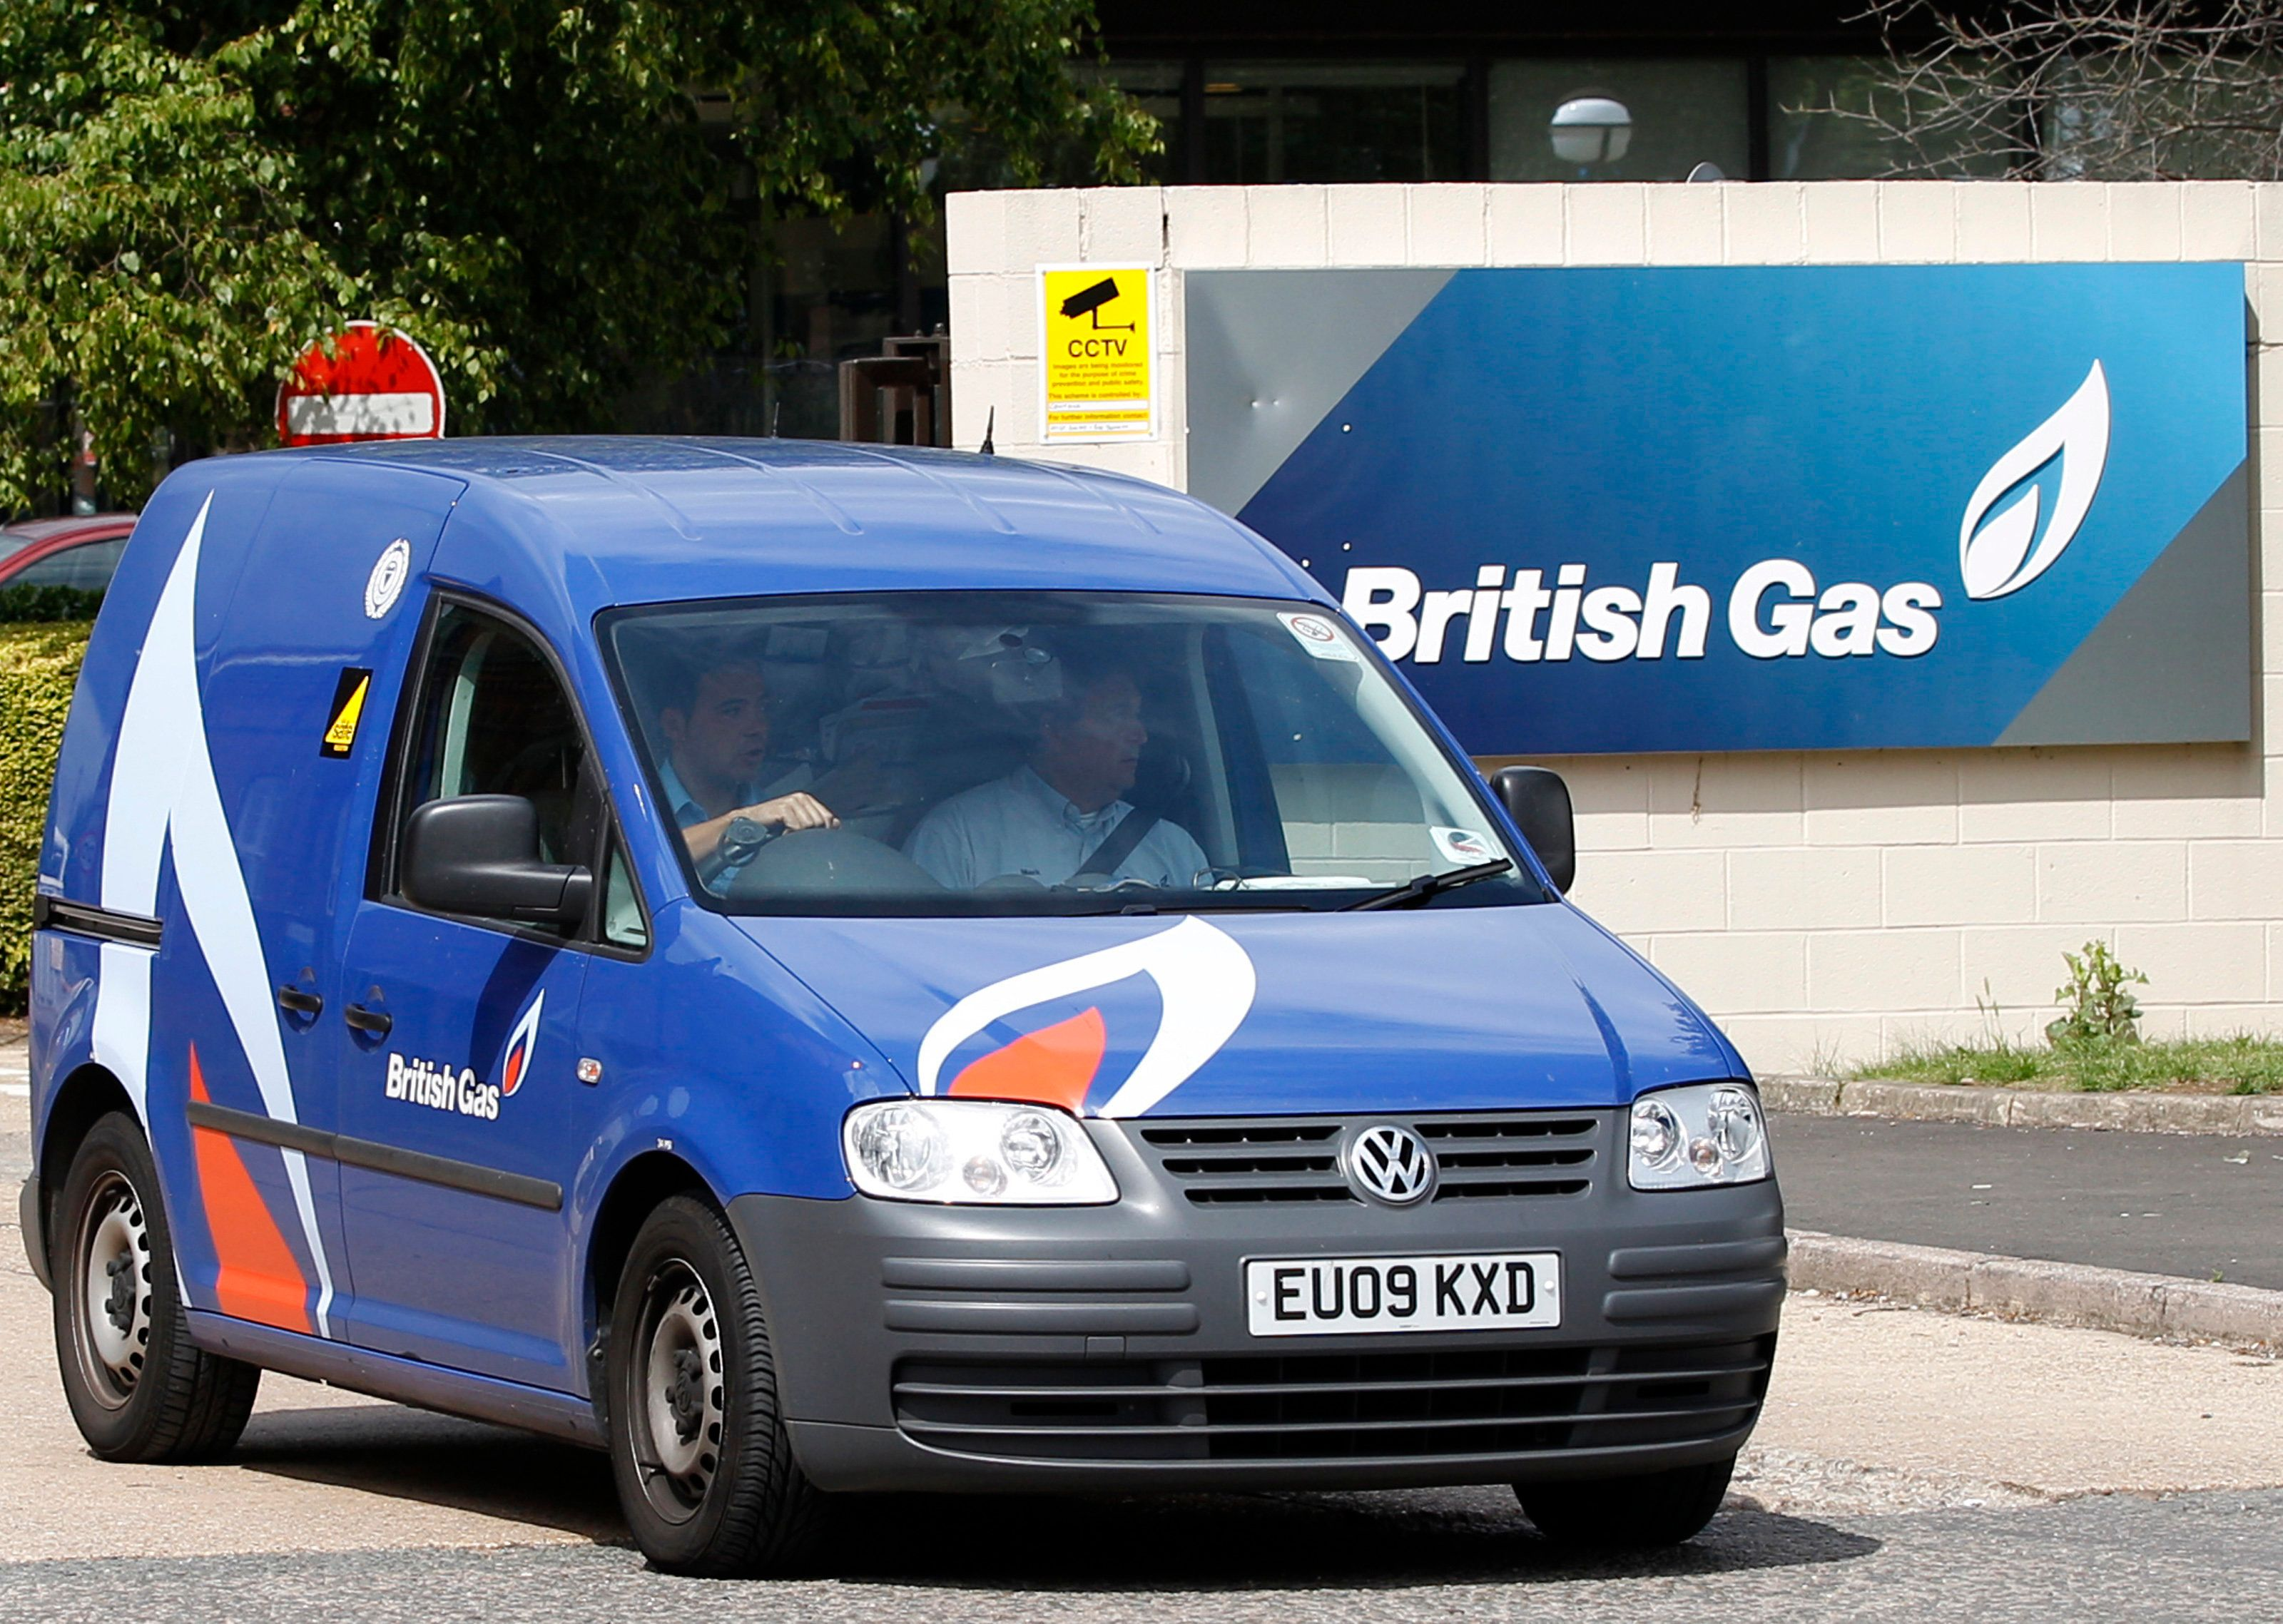 British Gas owner Centrica has said it will scrap standard gas and electricity tariffs for new